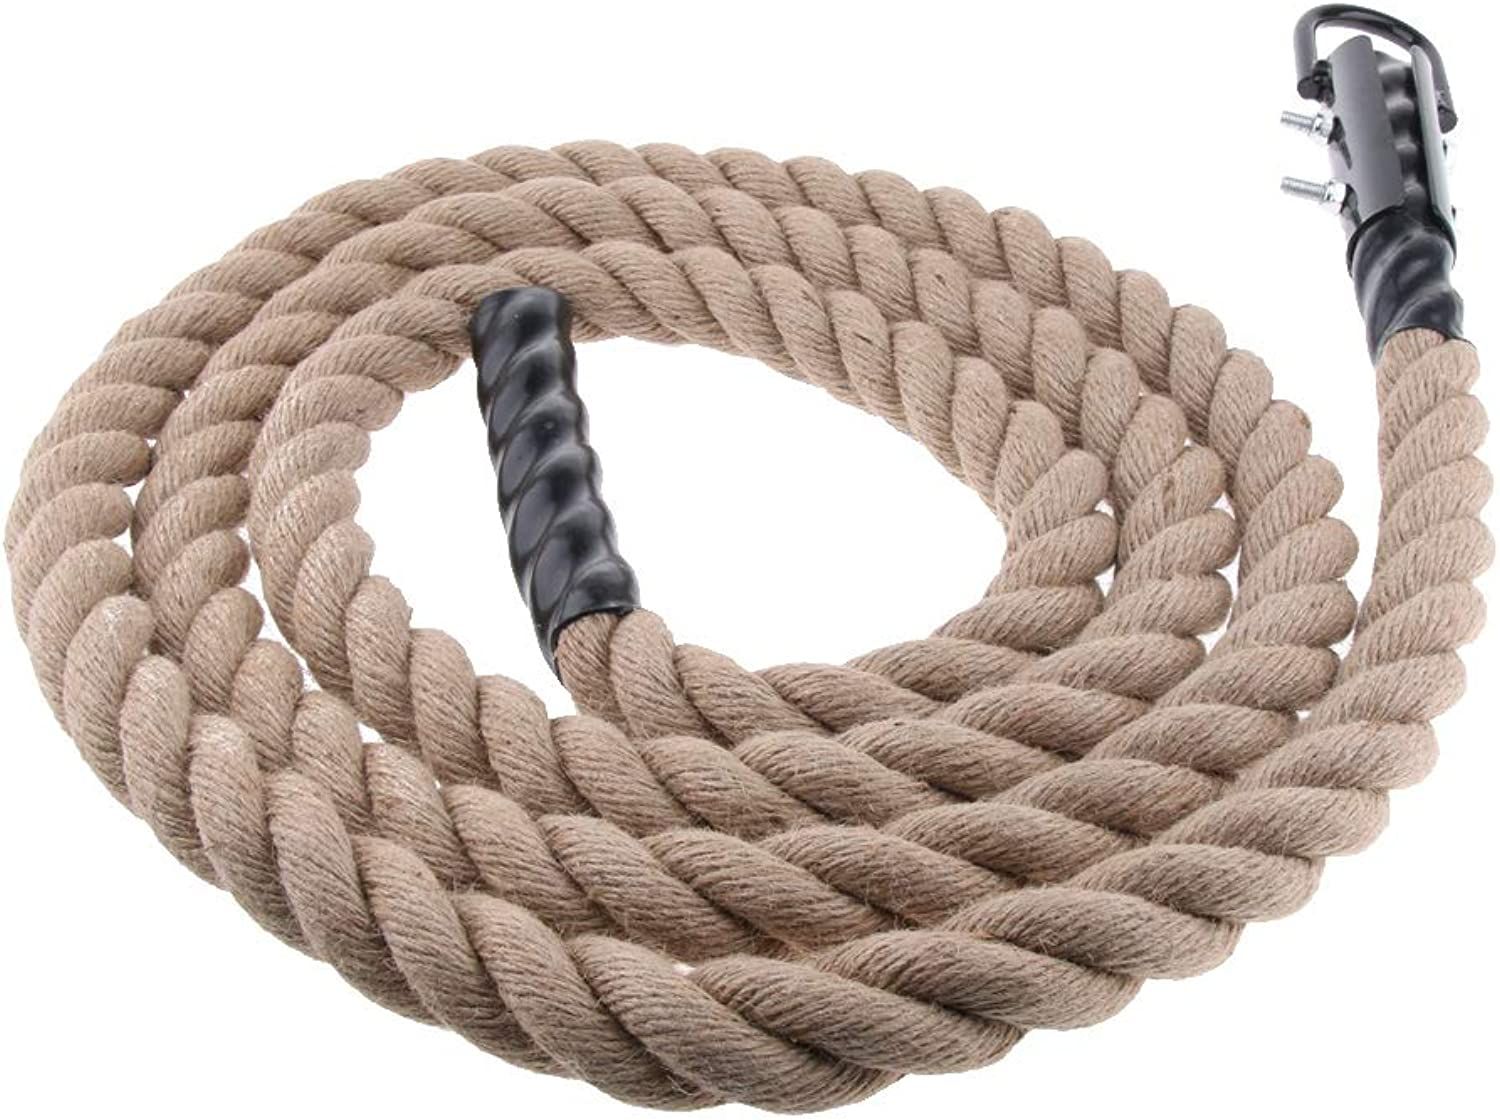 Baoblaze 38mm Climbing Jute Rope for Fitness Boxing Training Gym Exercise